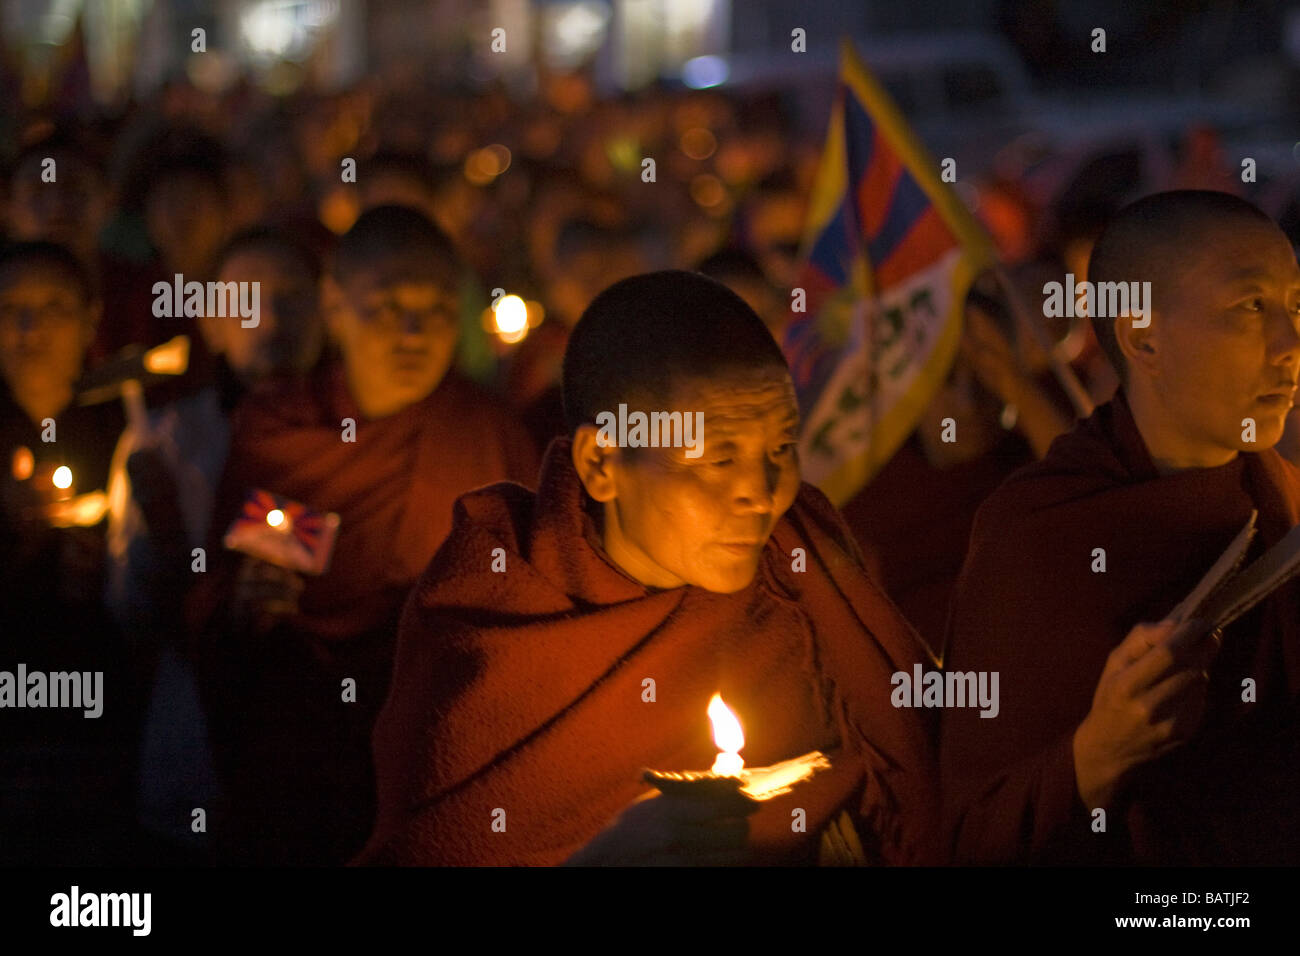 Tibetans marching on a candlelight vigil in Mcleod Ganj, Dharamsala, India - Stock Image